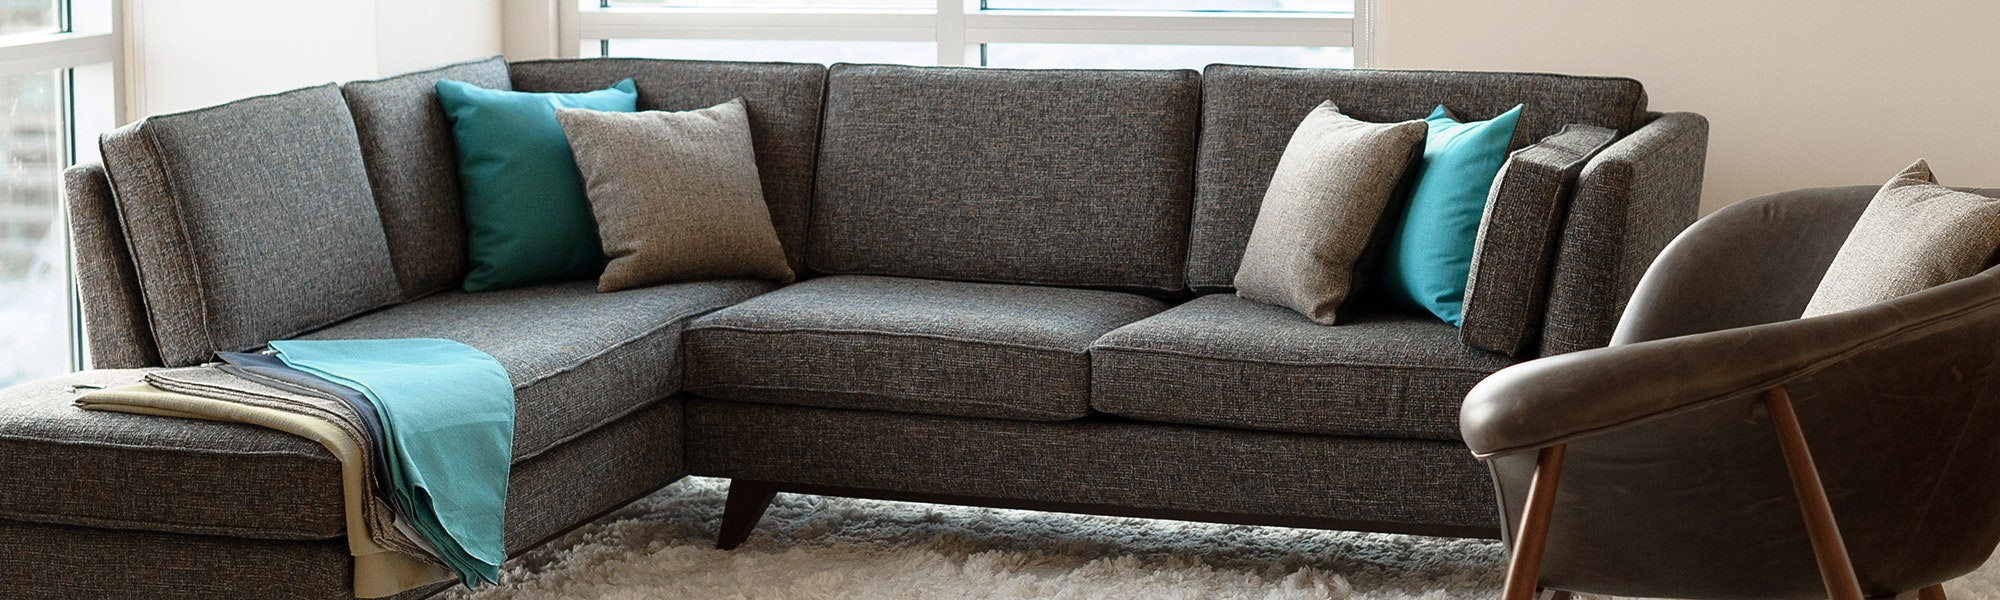 Professional Upholstery Cleaning South Guildford